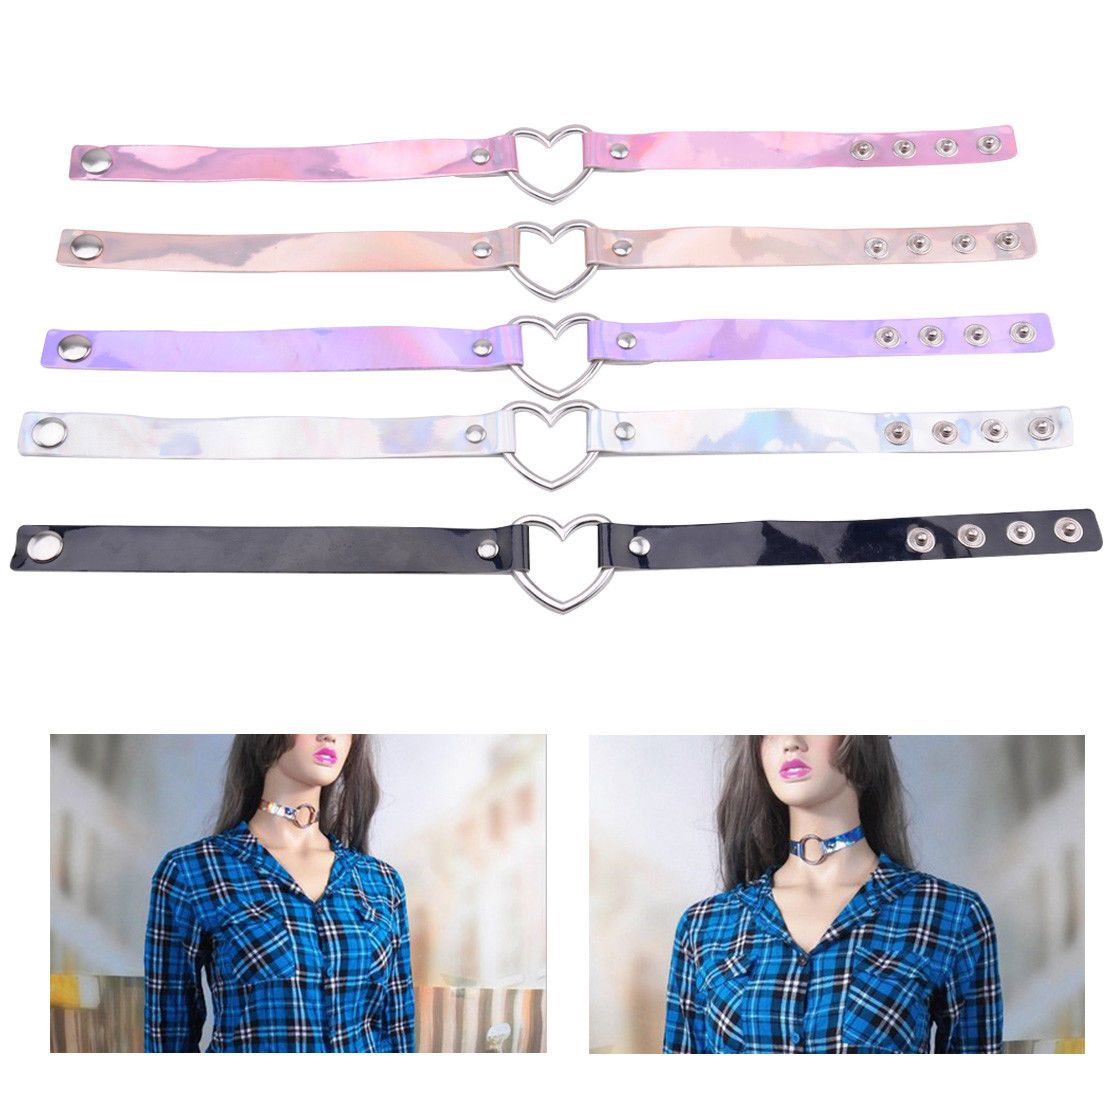 Holographic Choker Punk Laser Leather Love Heart Collar Necklace Rivet Buckle